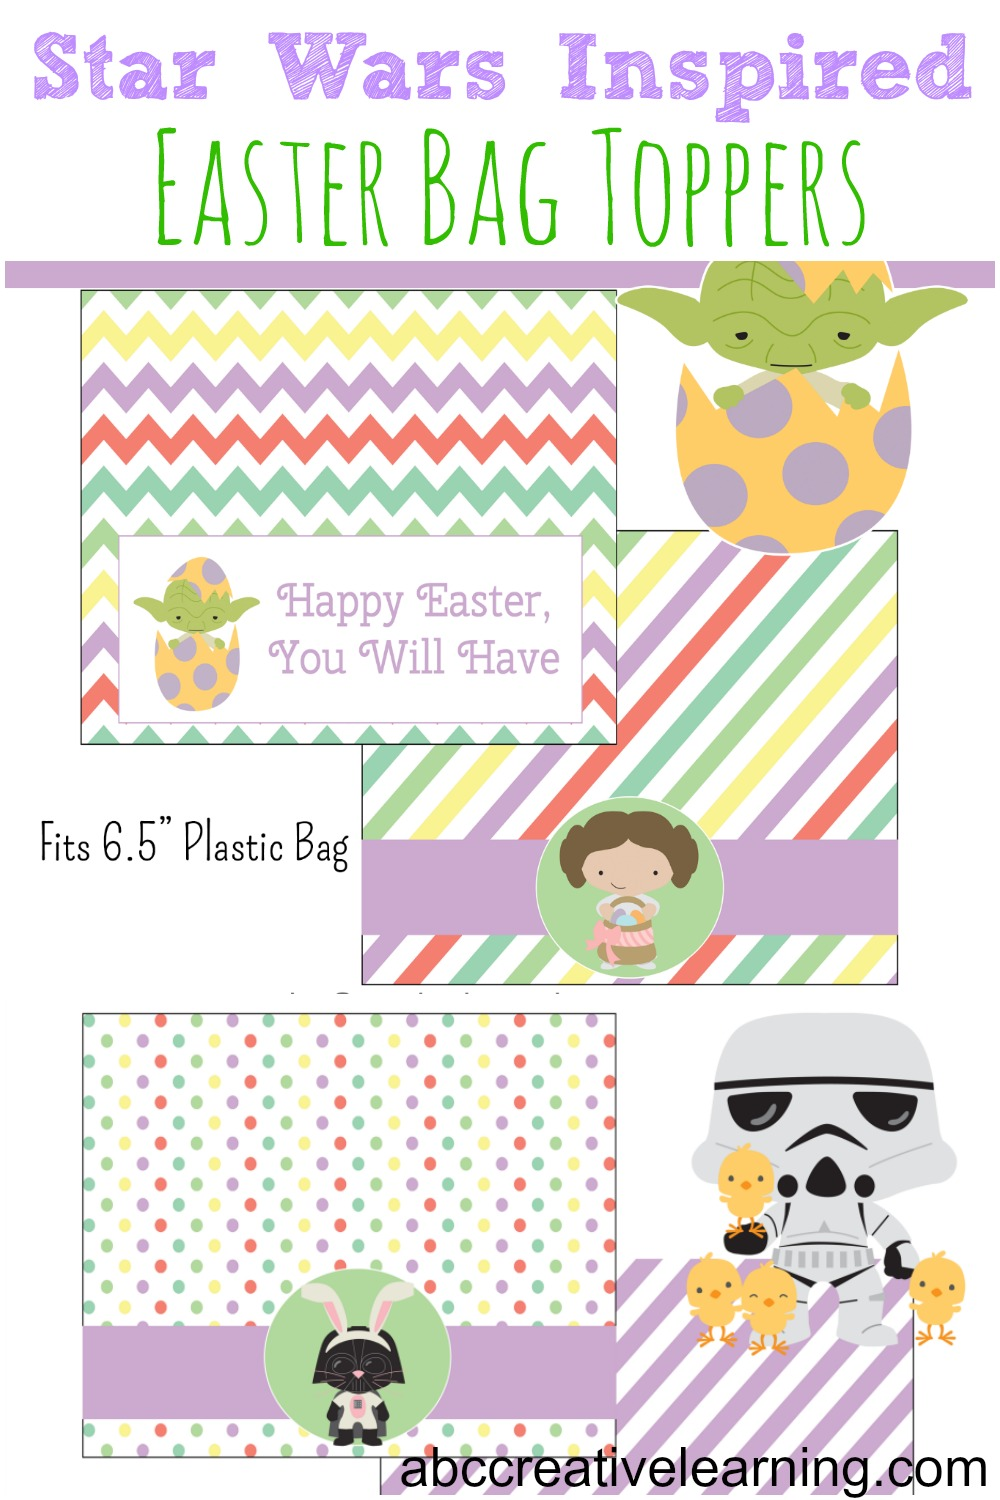 Star Wars Easter Bag Toppers